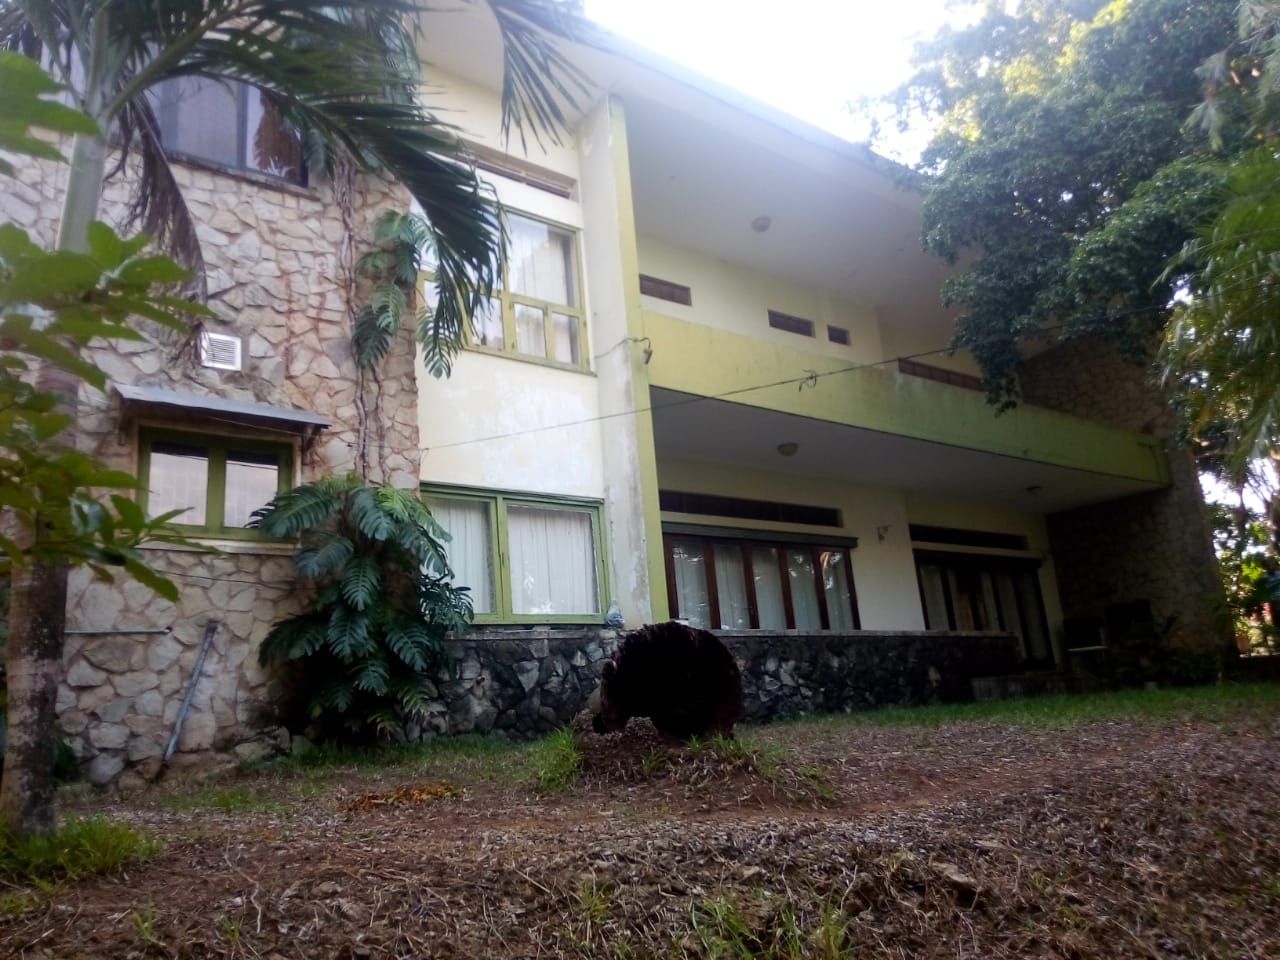 4 br house for sale in Nyali